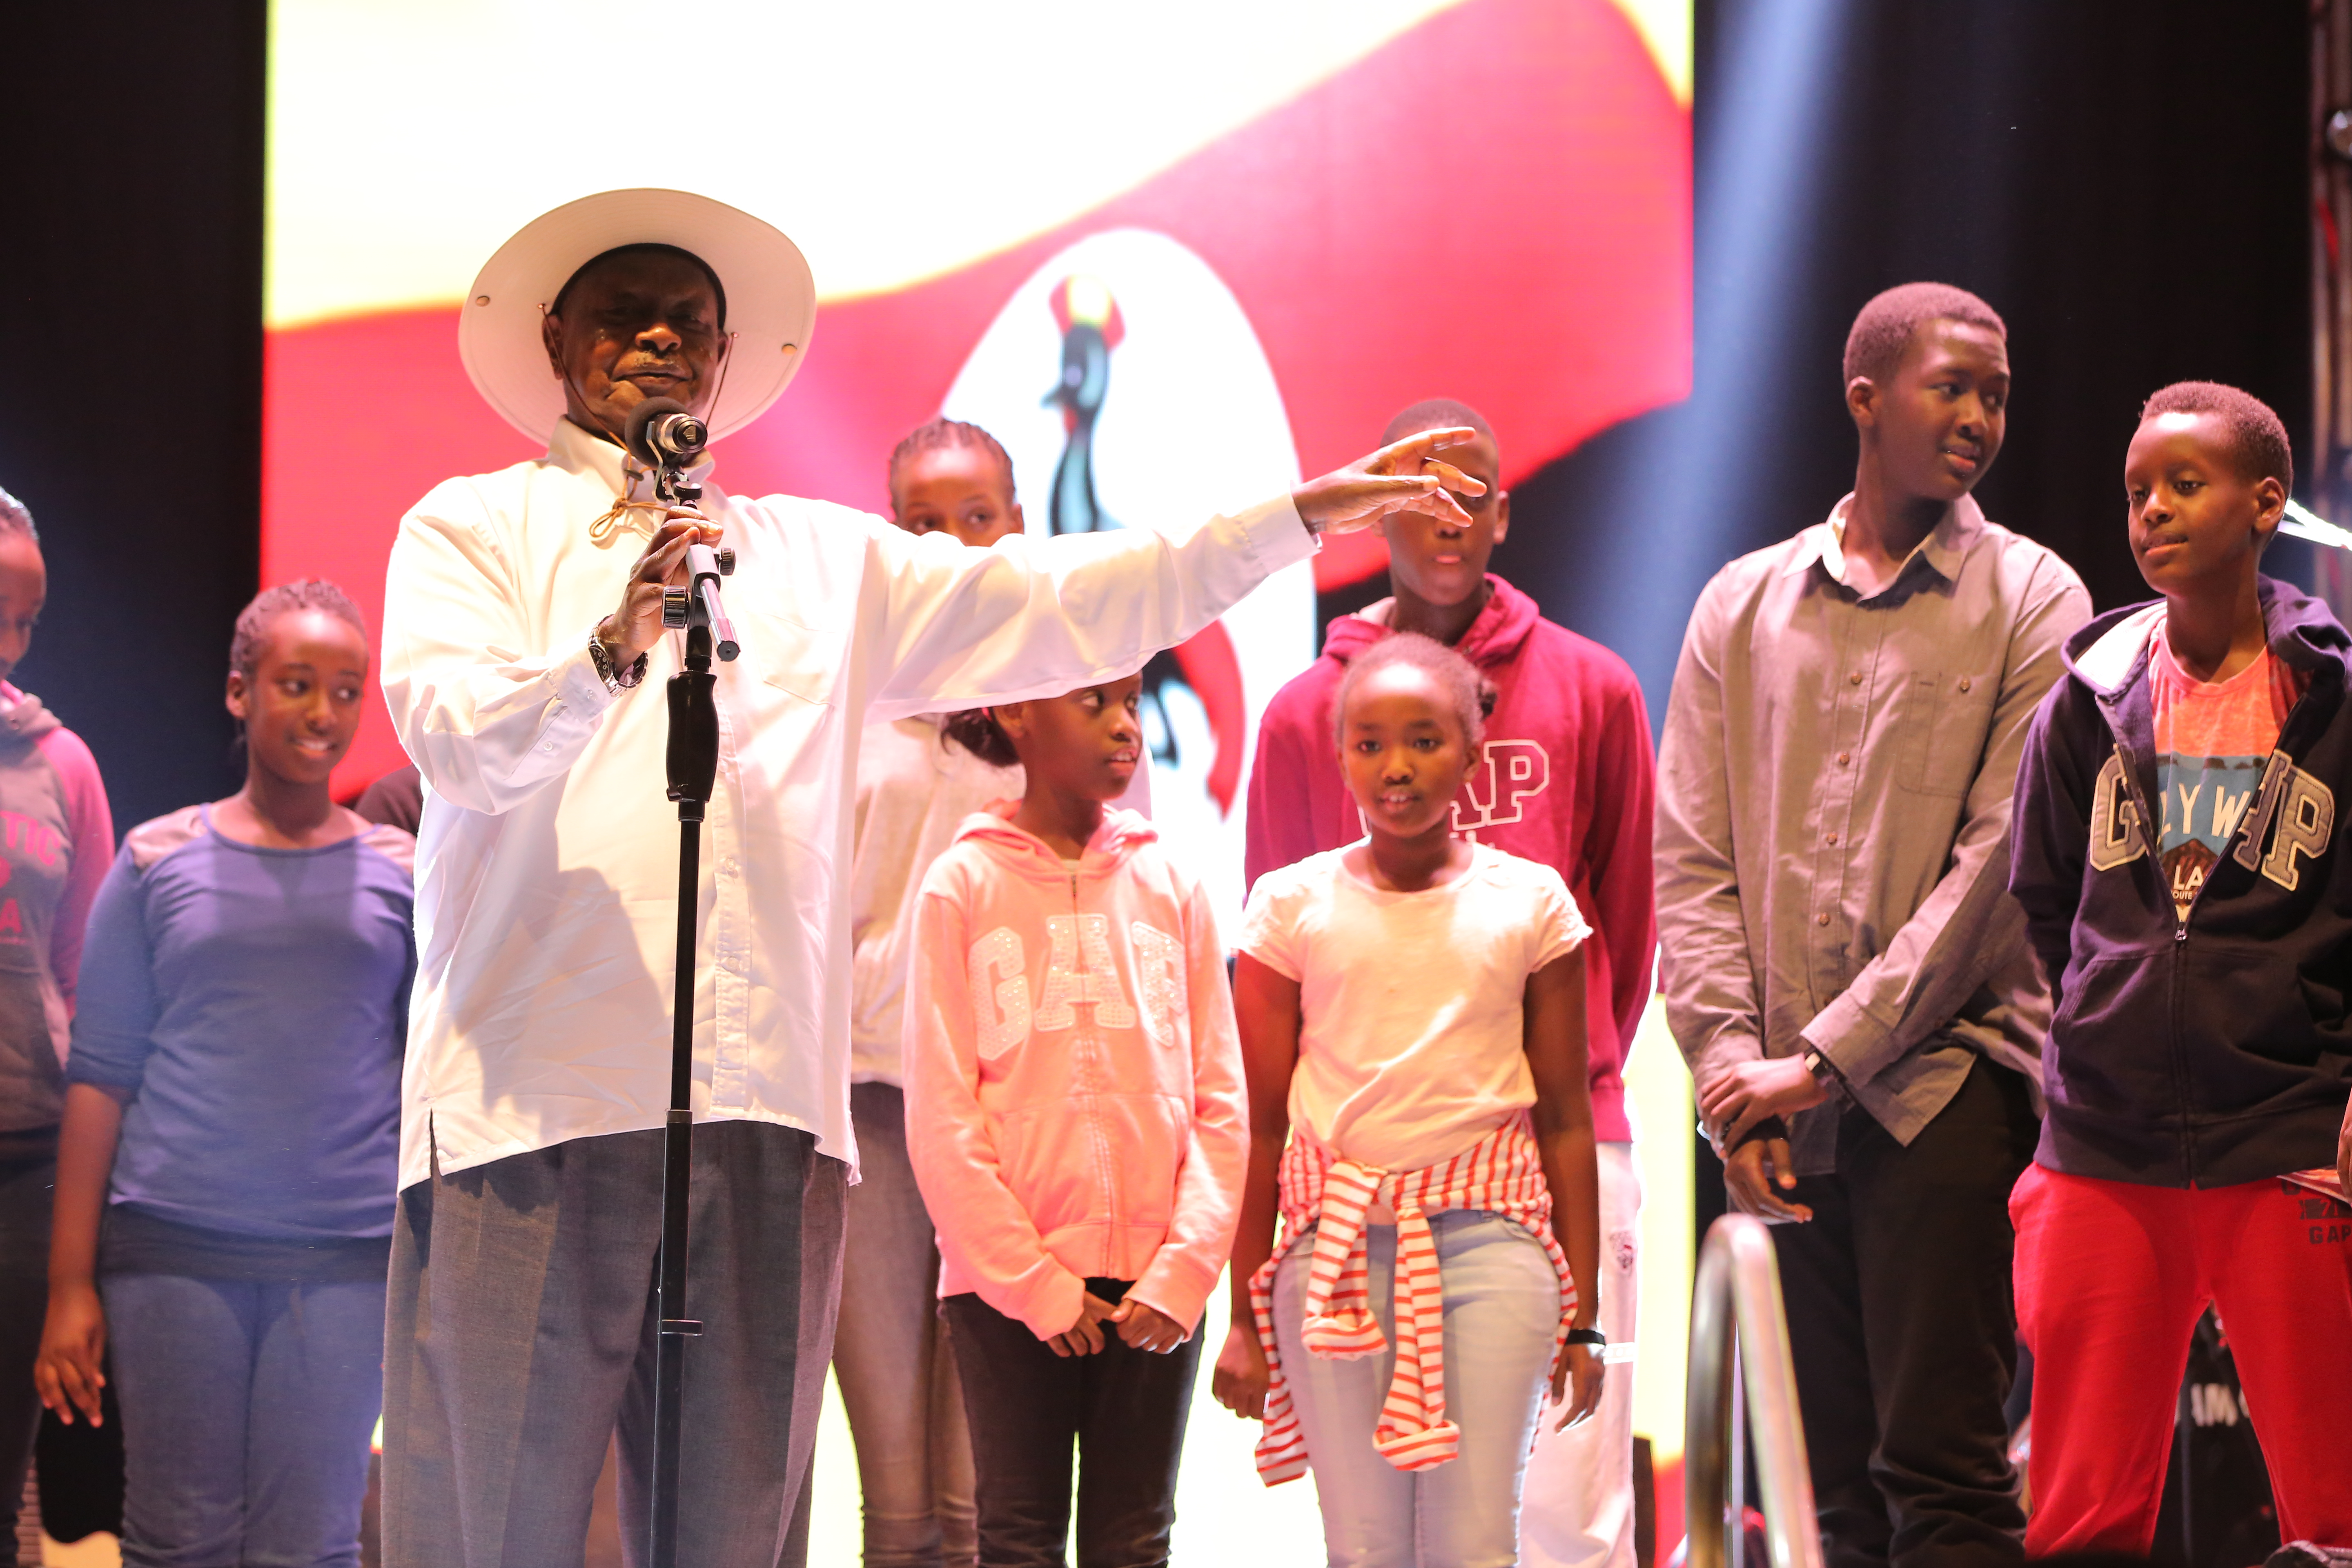 President Museveni, the biggest surprise at the event.